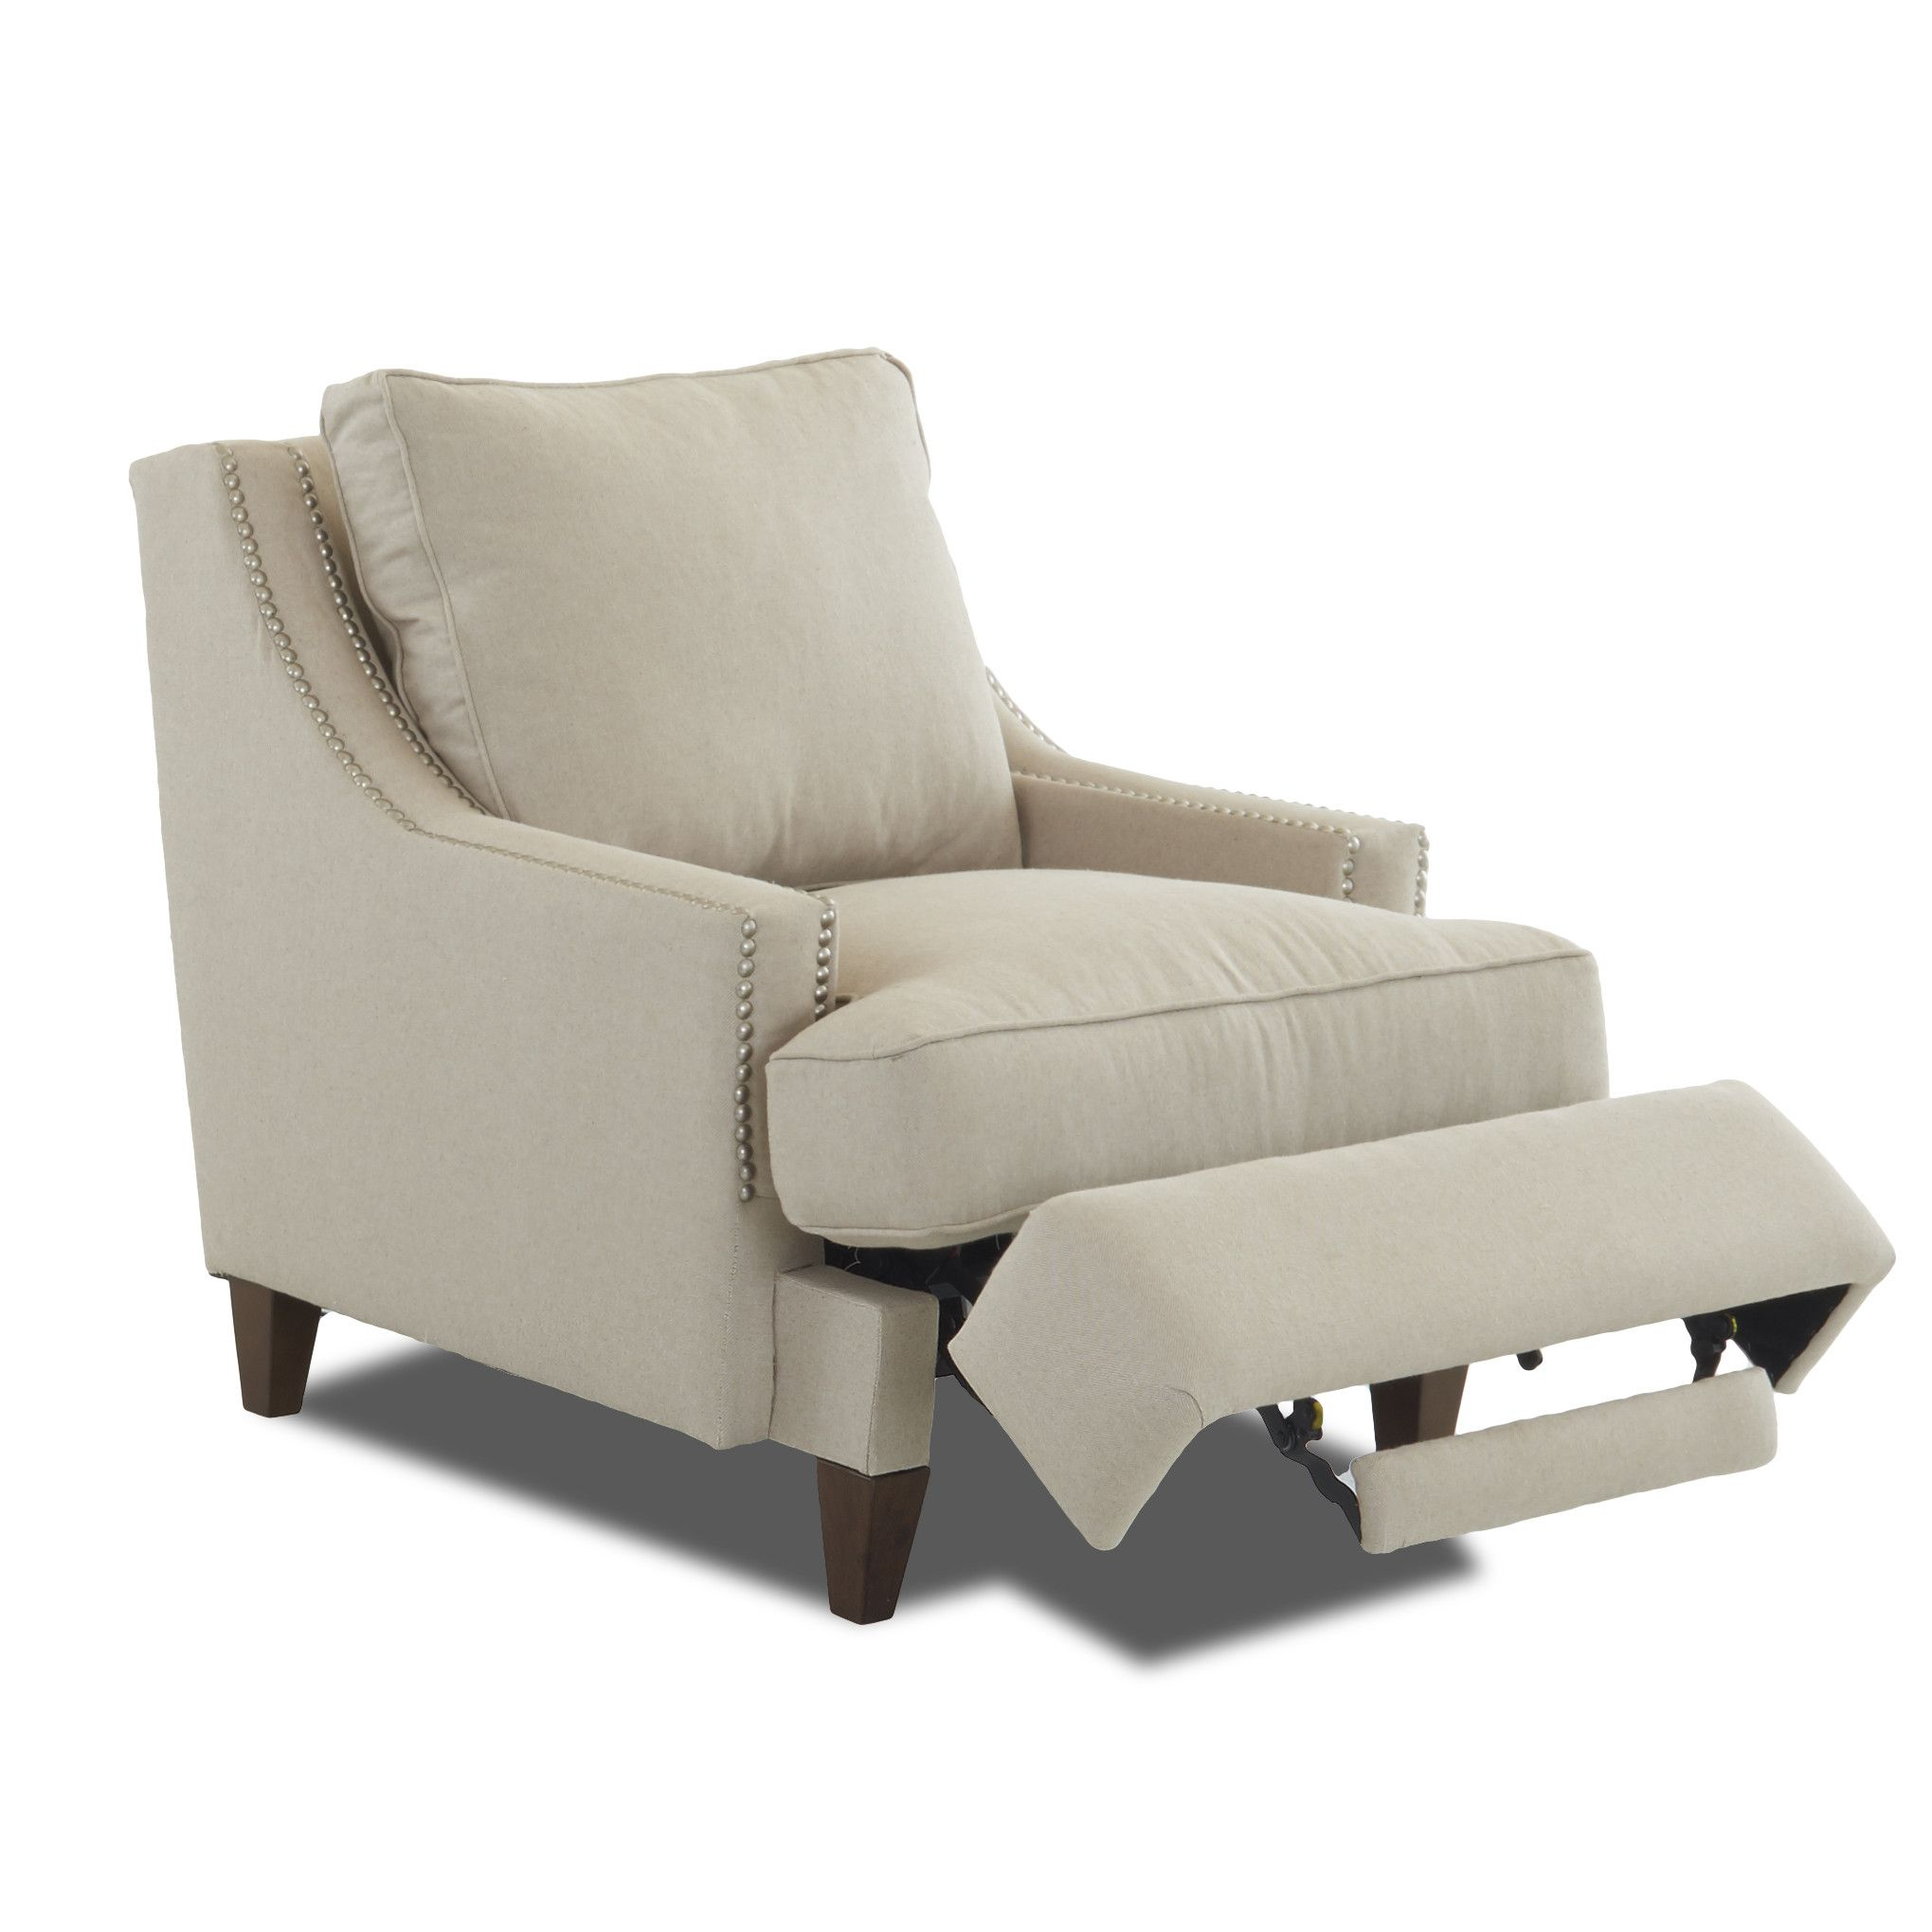 Wayfair Custom Upholstery Tricia Power Hybrid Reclining